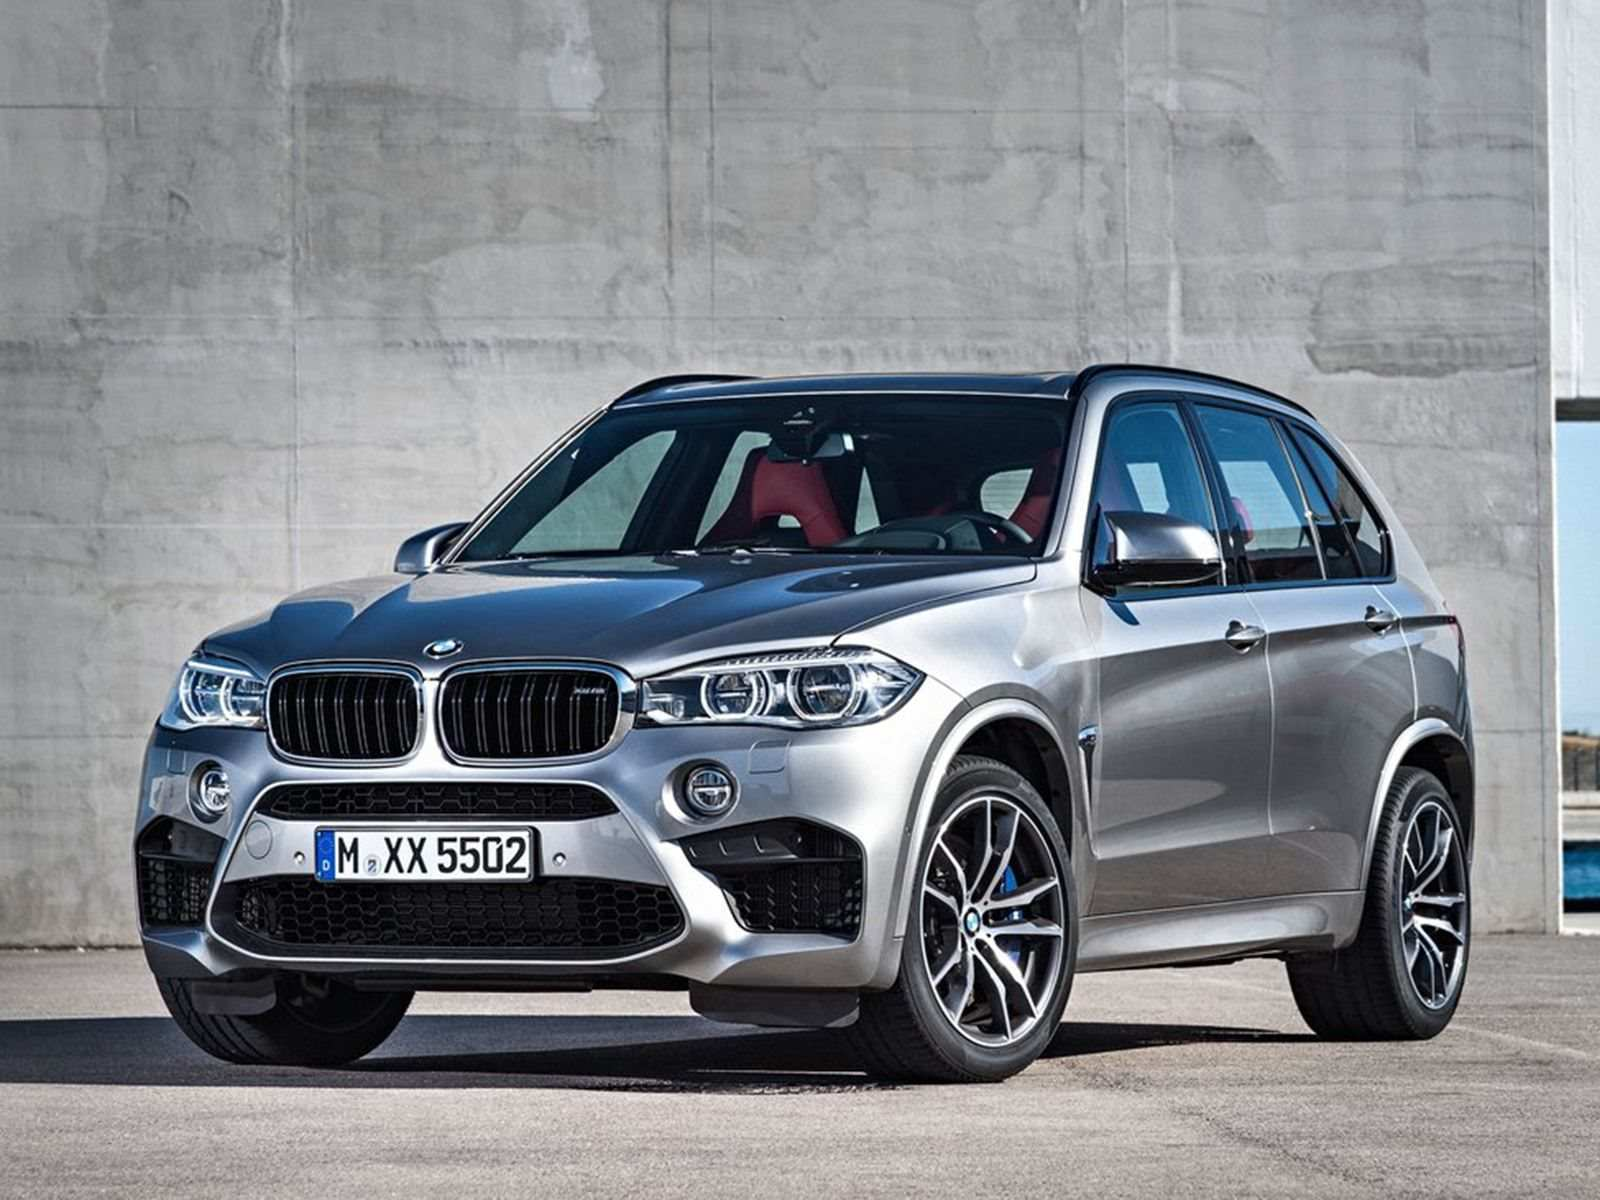 88 The Best 2020 BMW X5 Research New